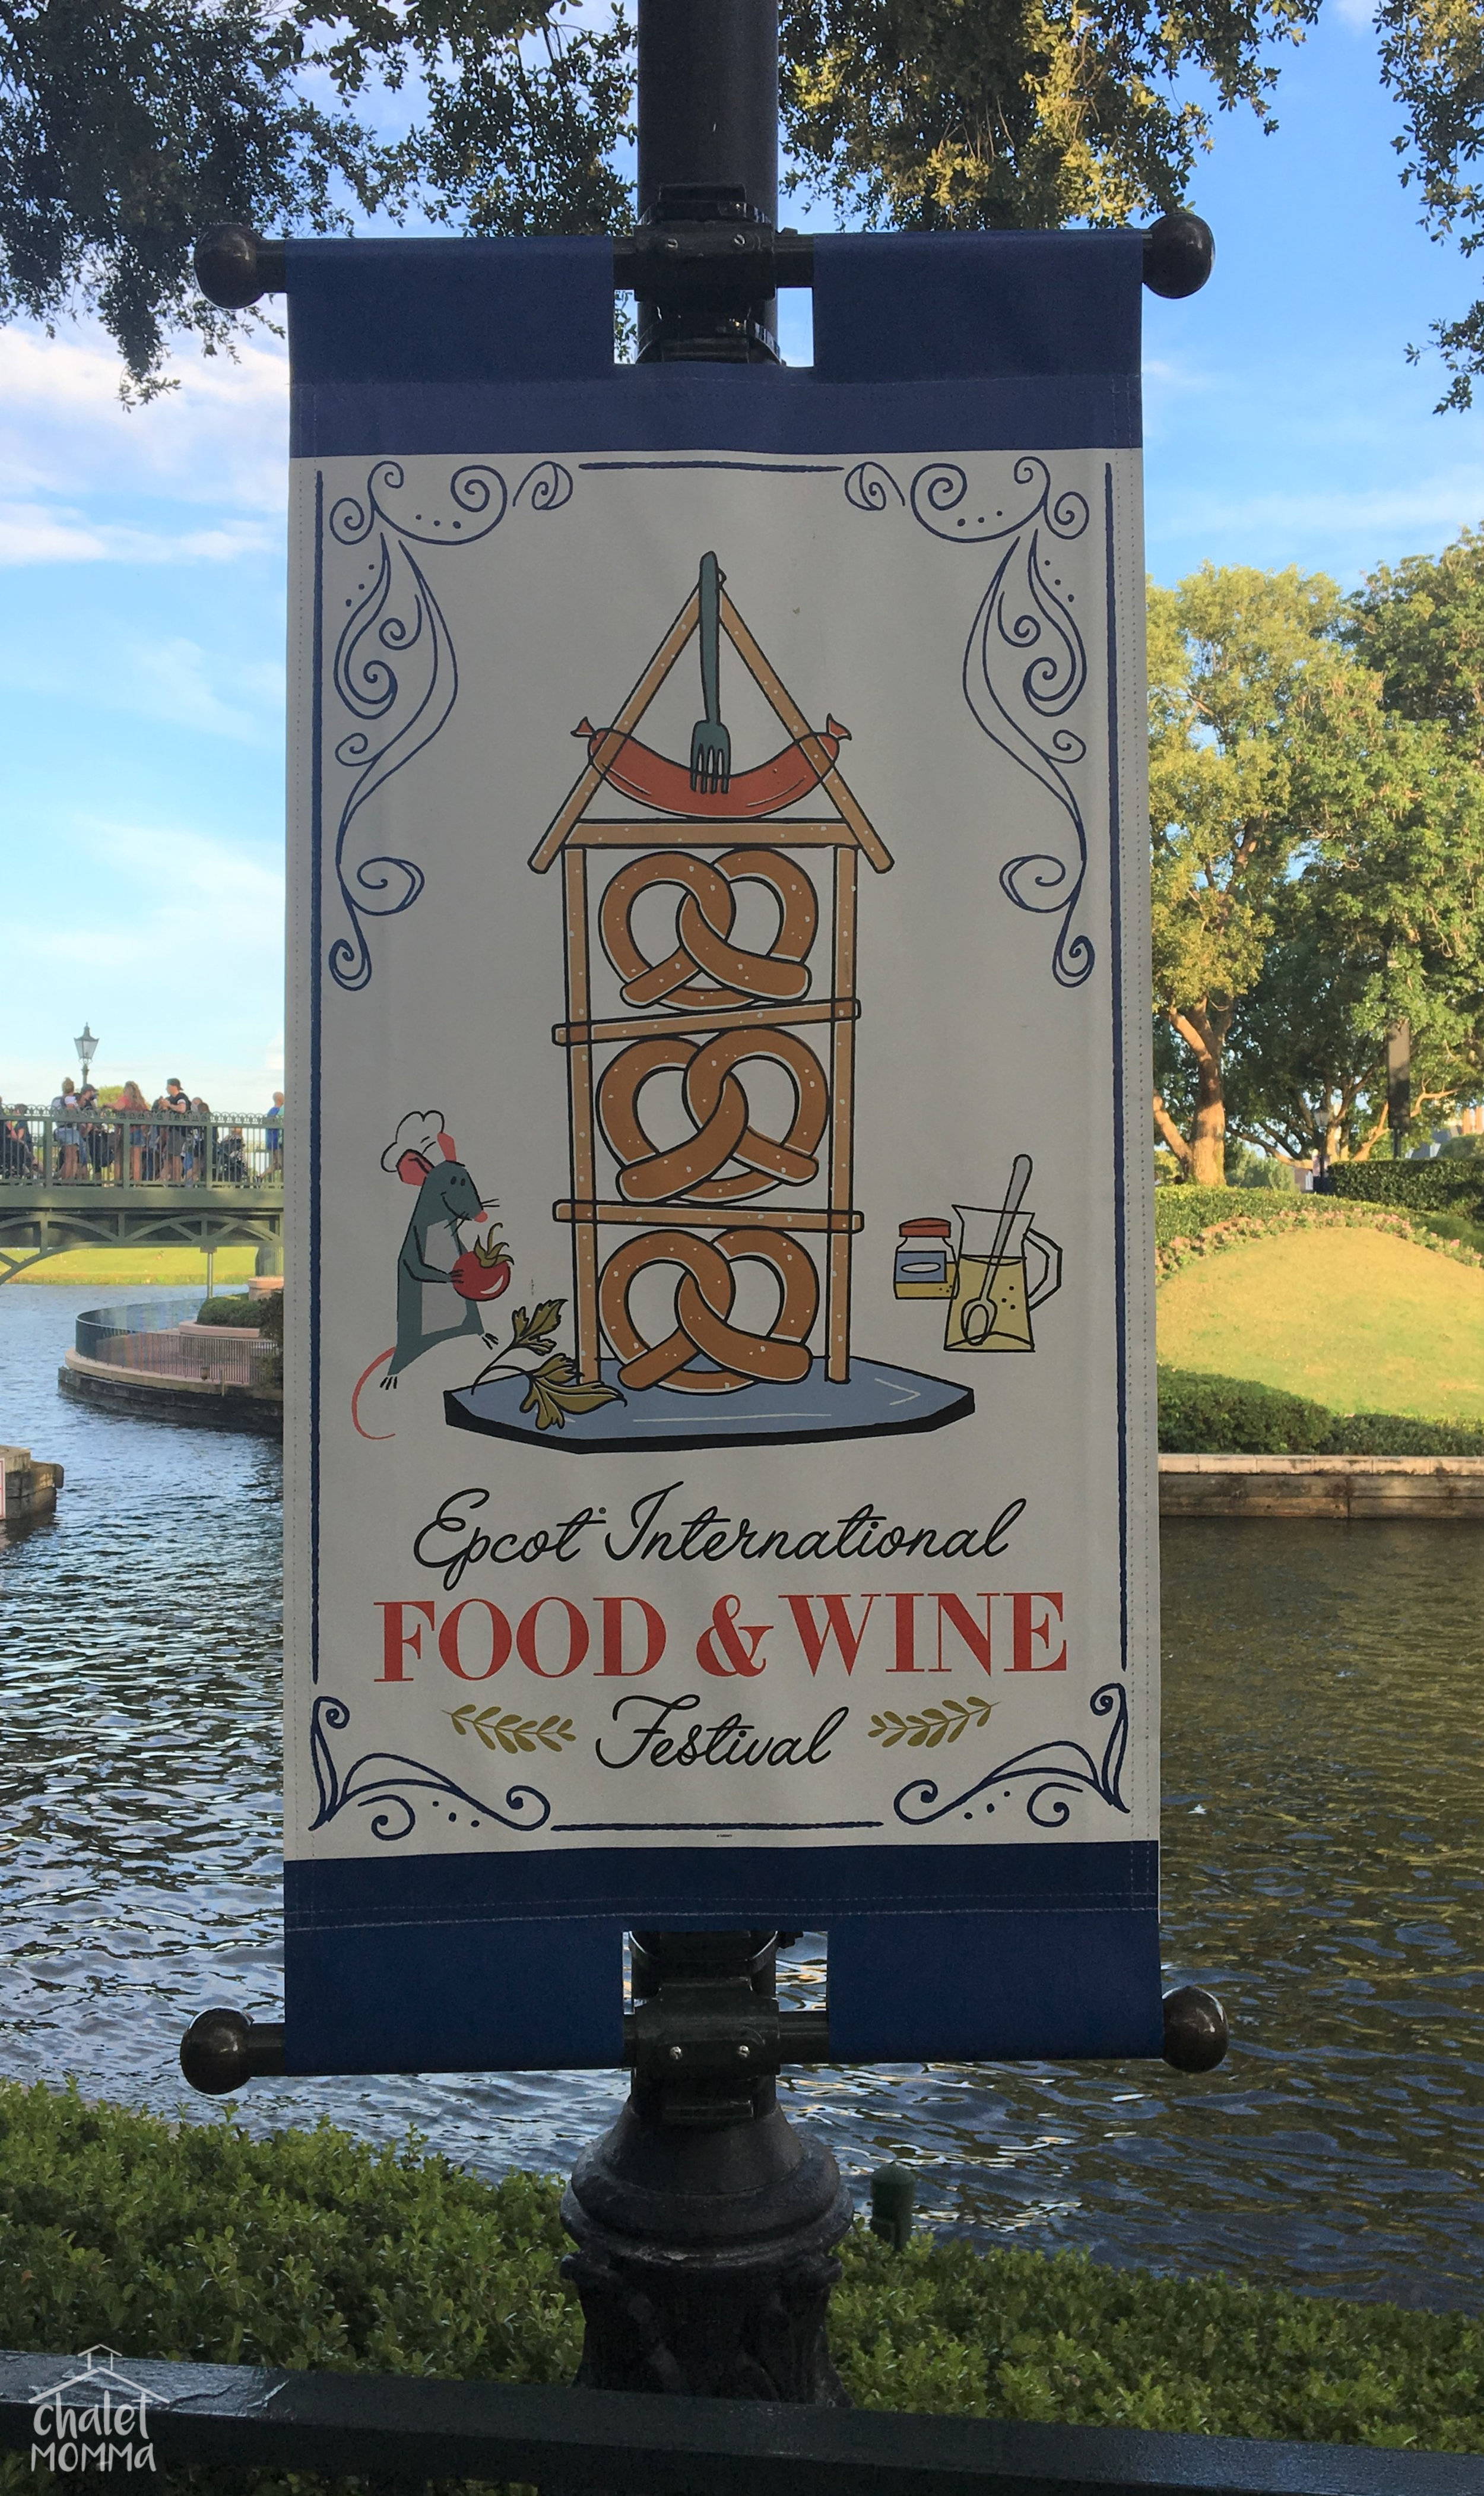 You can't believe how thrilled we all were that the International Food & Wine Festival coincided with our trip!!!